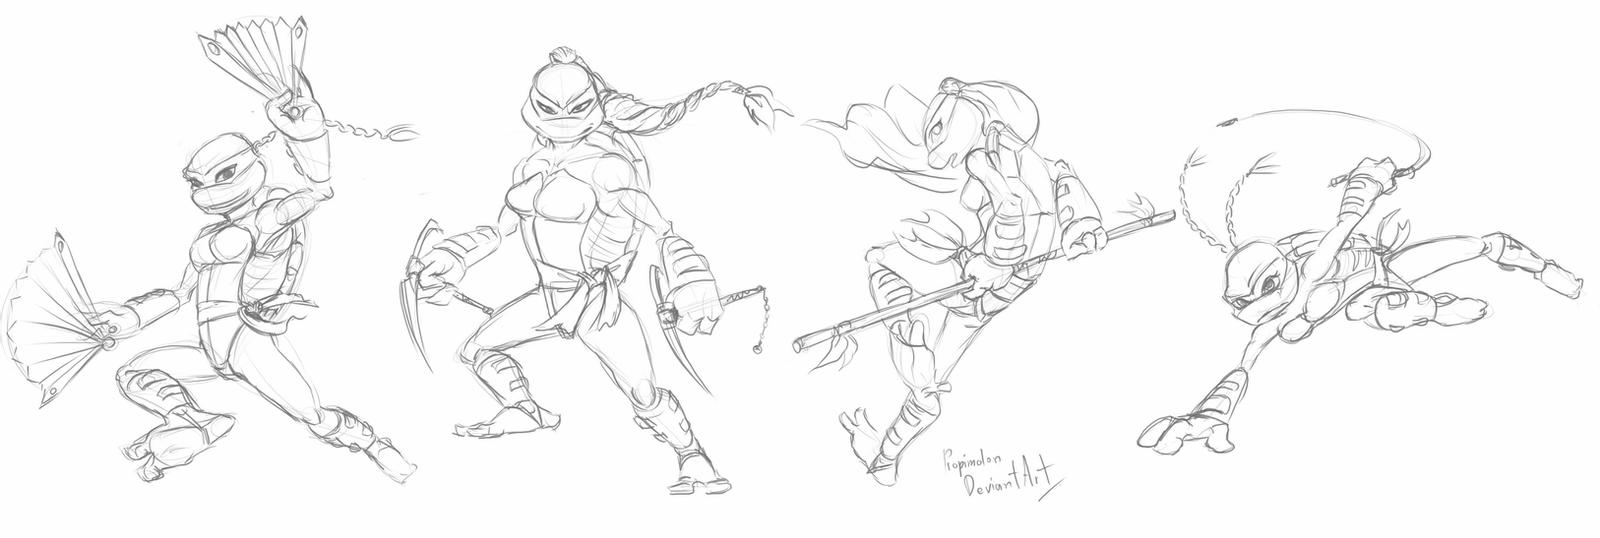 girl ninja turtle coloring page two raphaels by sf fundeviantartcom on deviantart page girl coloring turtle ninja